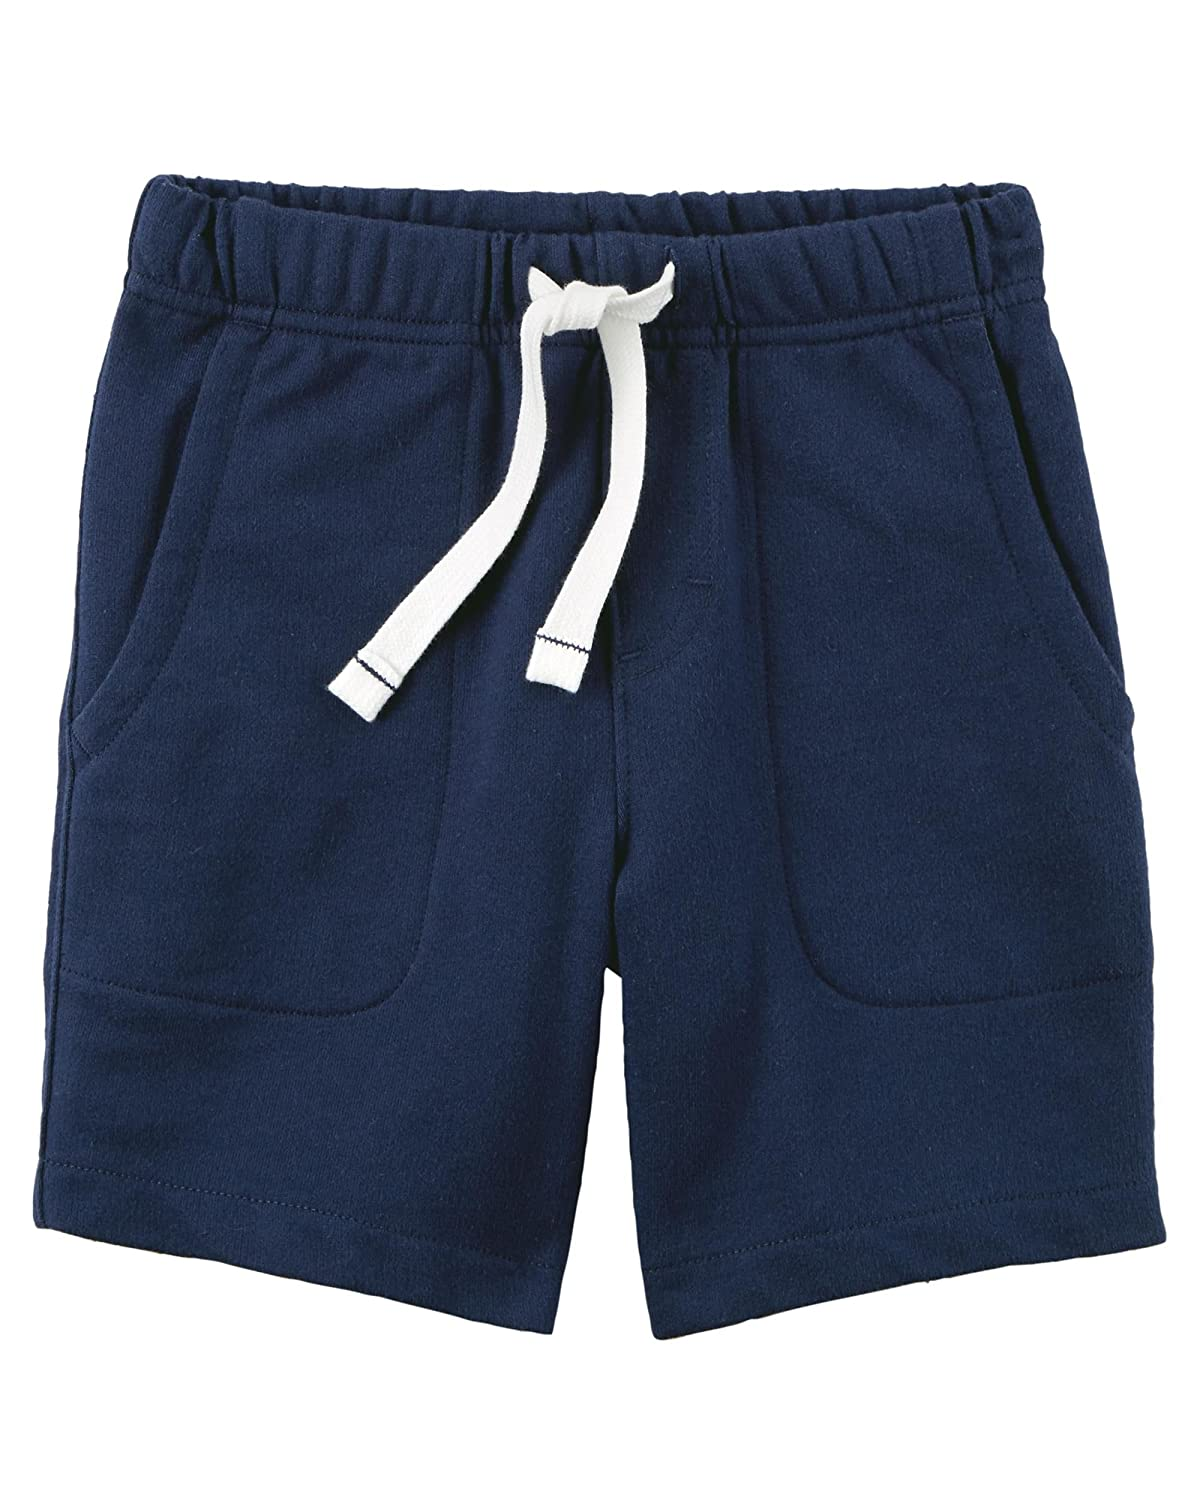 Carters Baby Boys Easy Pull-on French Terry Shorts